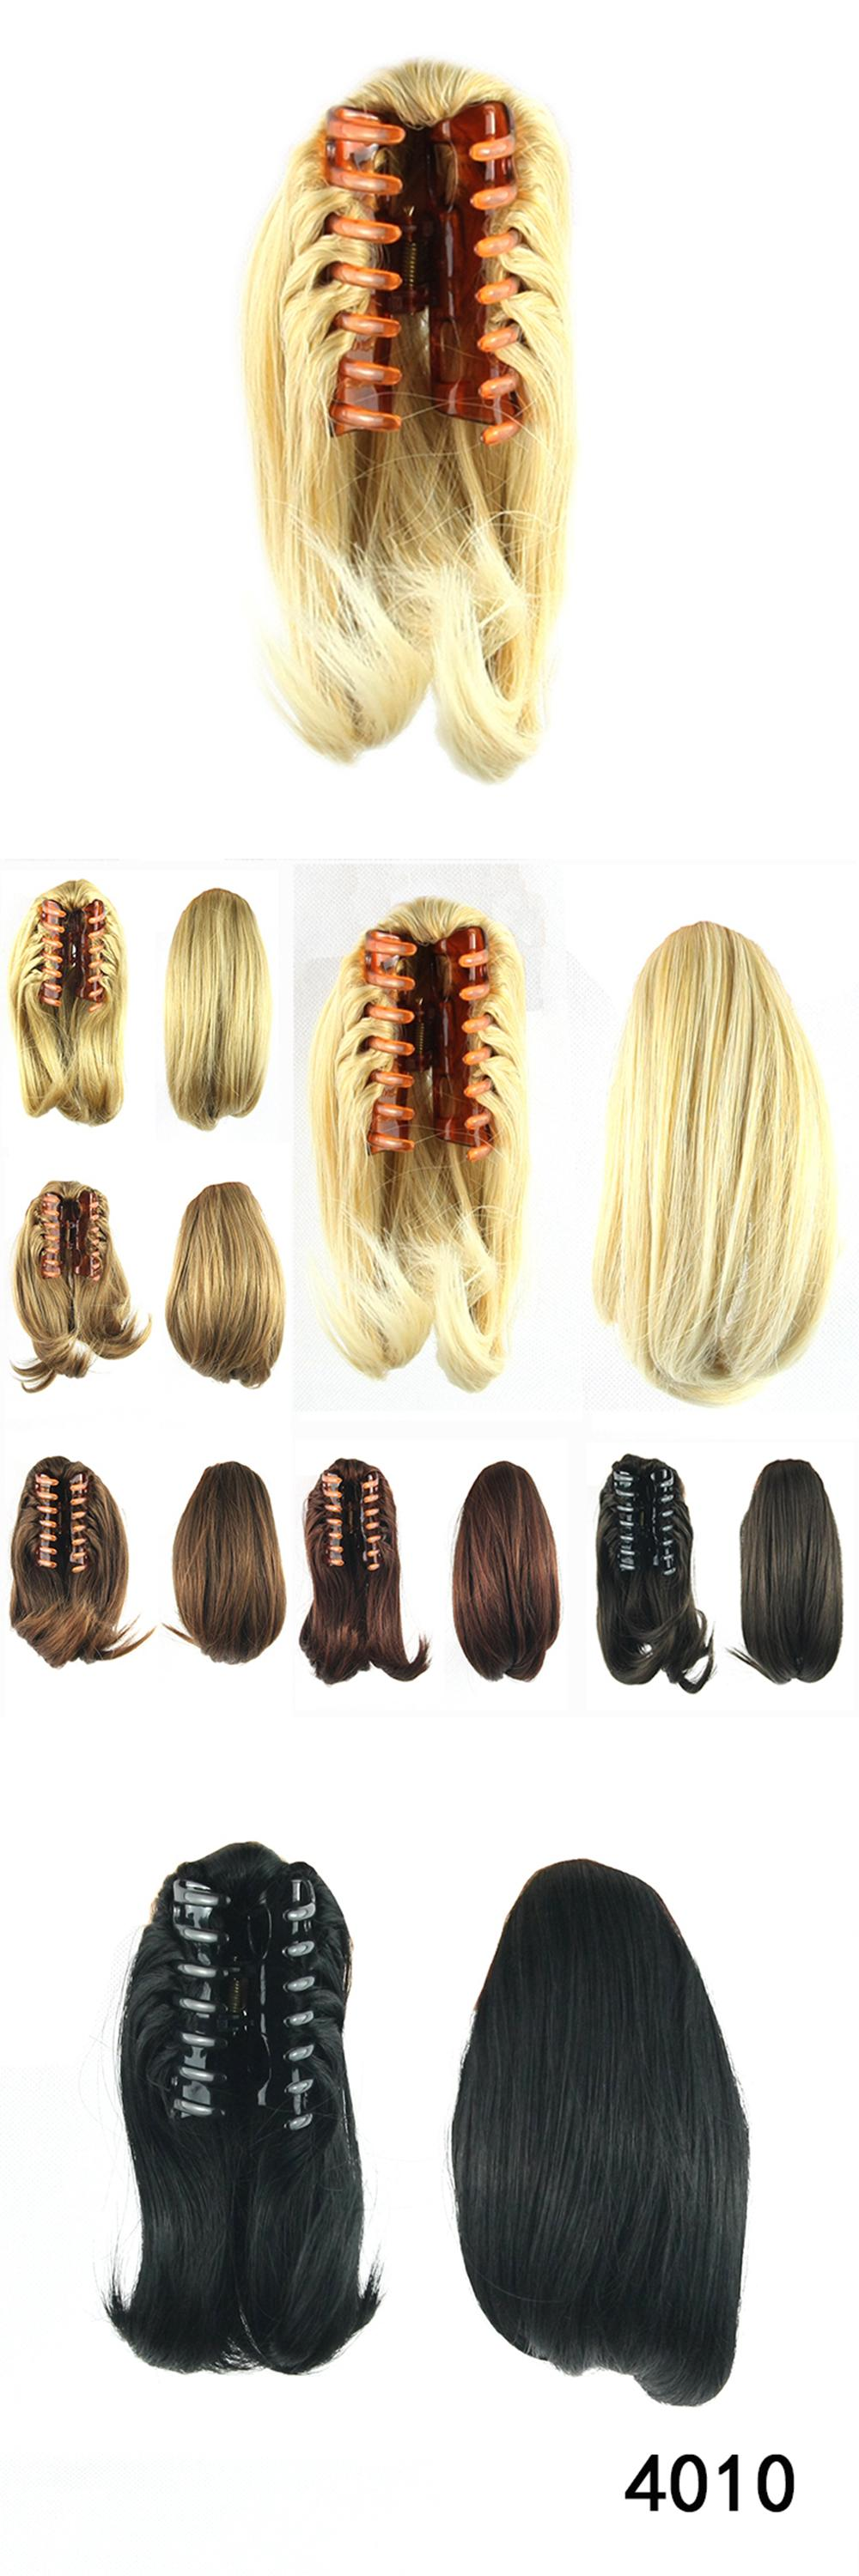 Visit To Buy Hair Ponytails With Clip Bun Synthetic Claw Ponytail Extensions Hairpiece